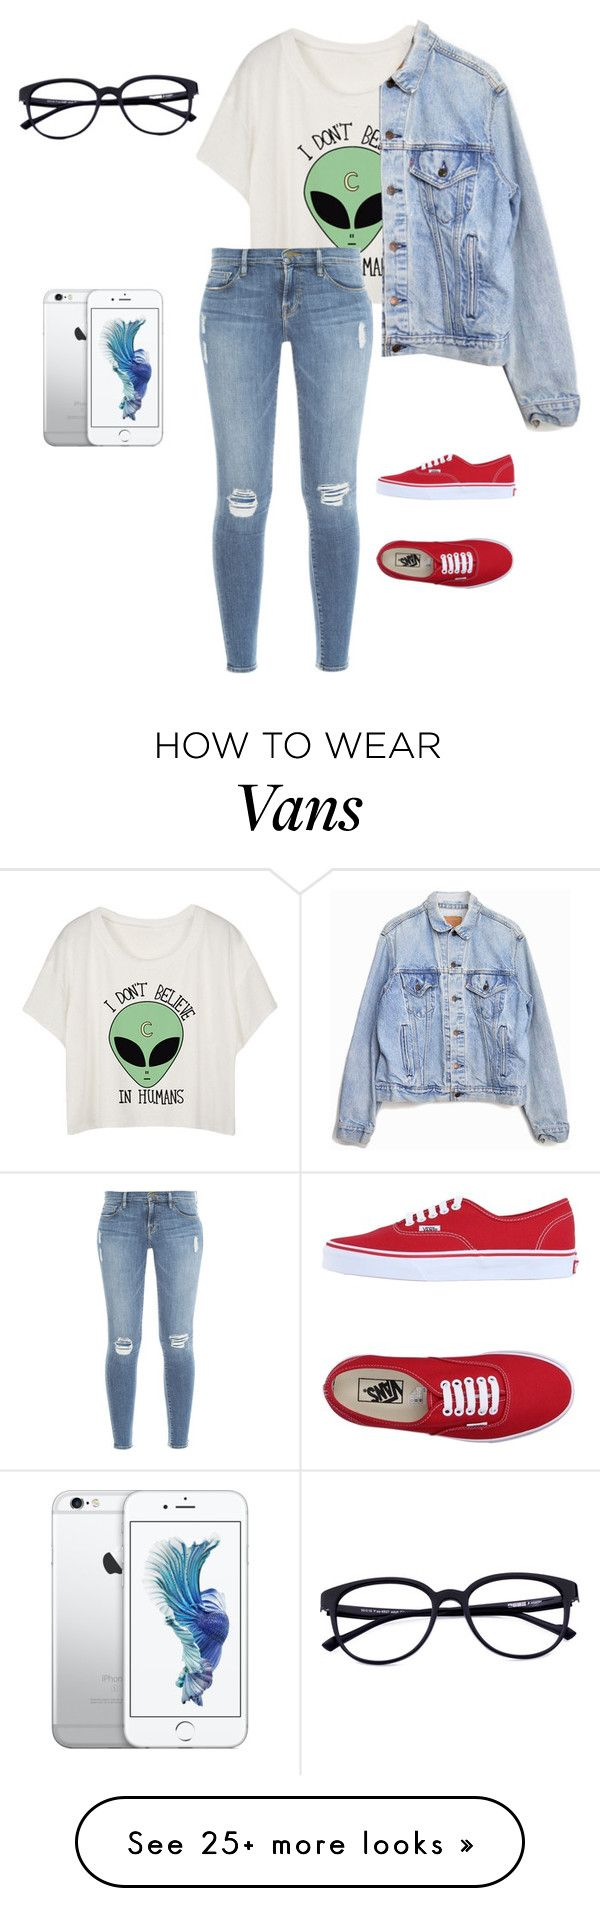 """""""midnight"""" by moonhauntedmyocean on Polyvore featuring Frame Denim, Levi's and Vans"""